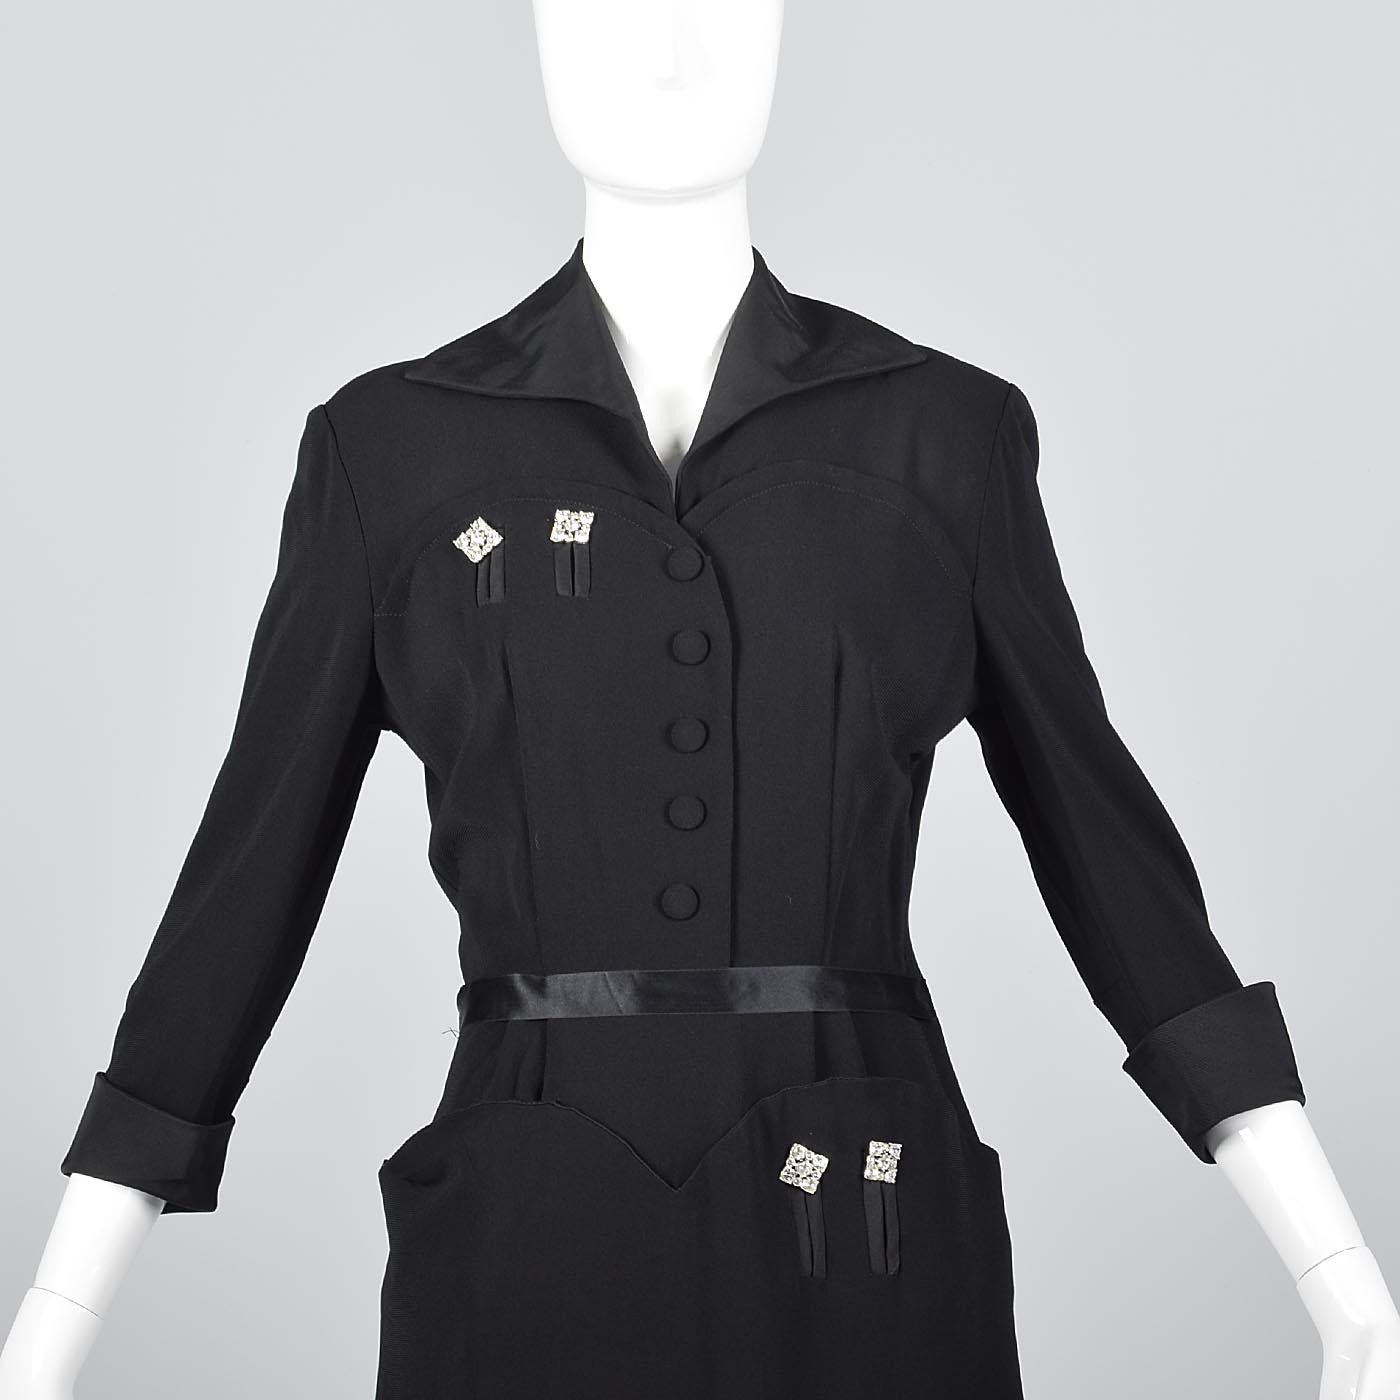 1940s Black Rayon Dress with Rhinestone Details